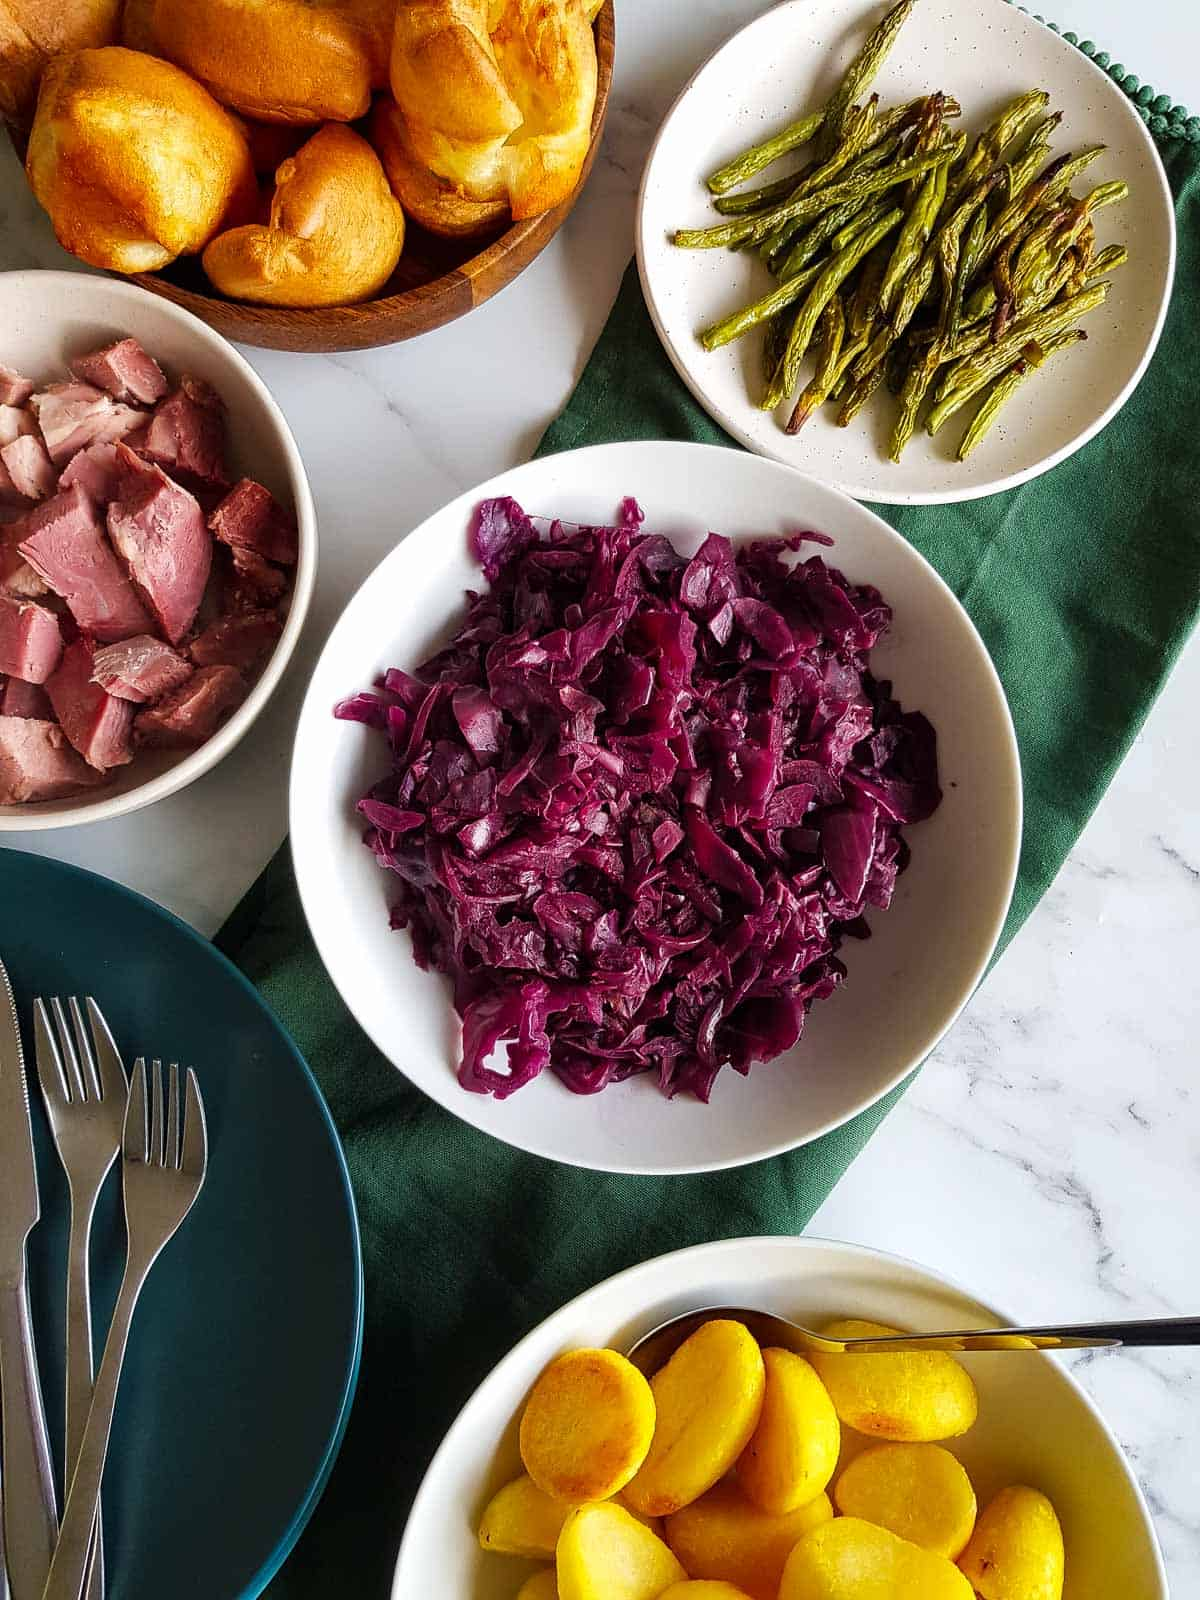 A roast dinner table with several side dishes, including red cabbage.